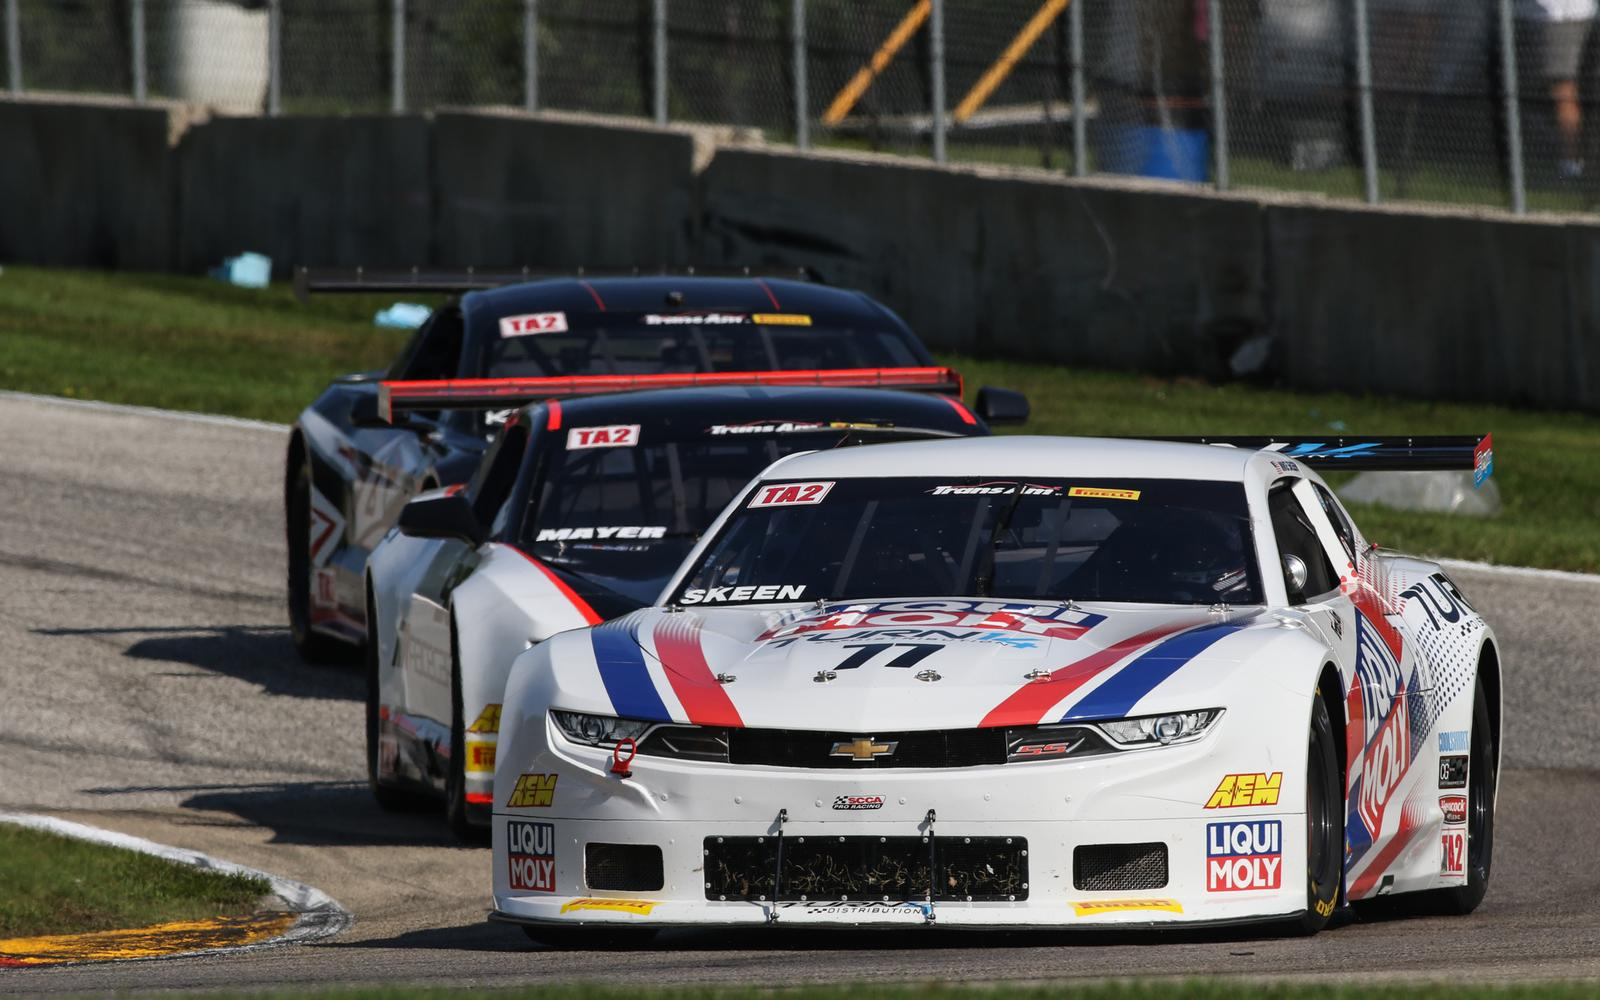 Dramatic Race at Road America Sees Skeen Score Third TA2® Powered by AEM Win